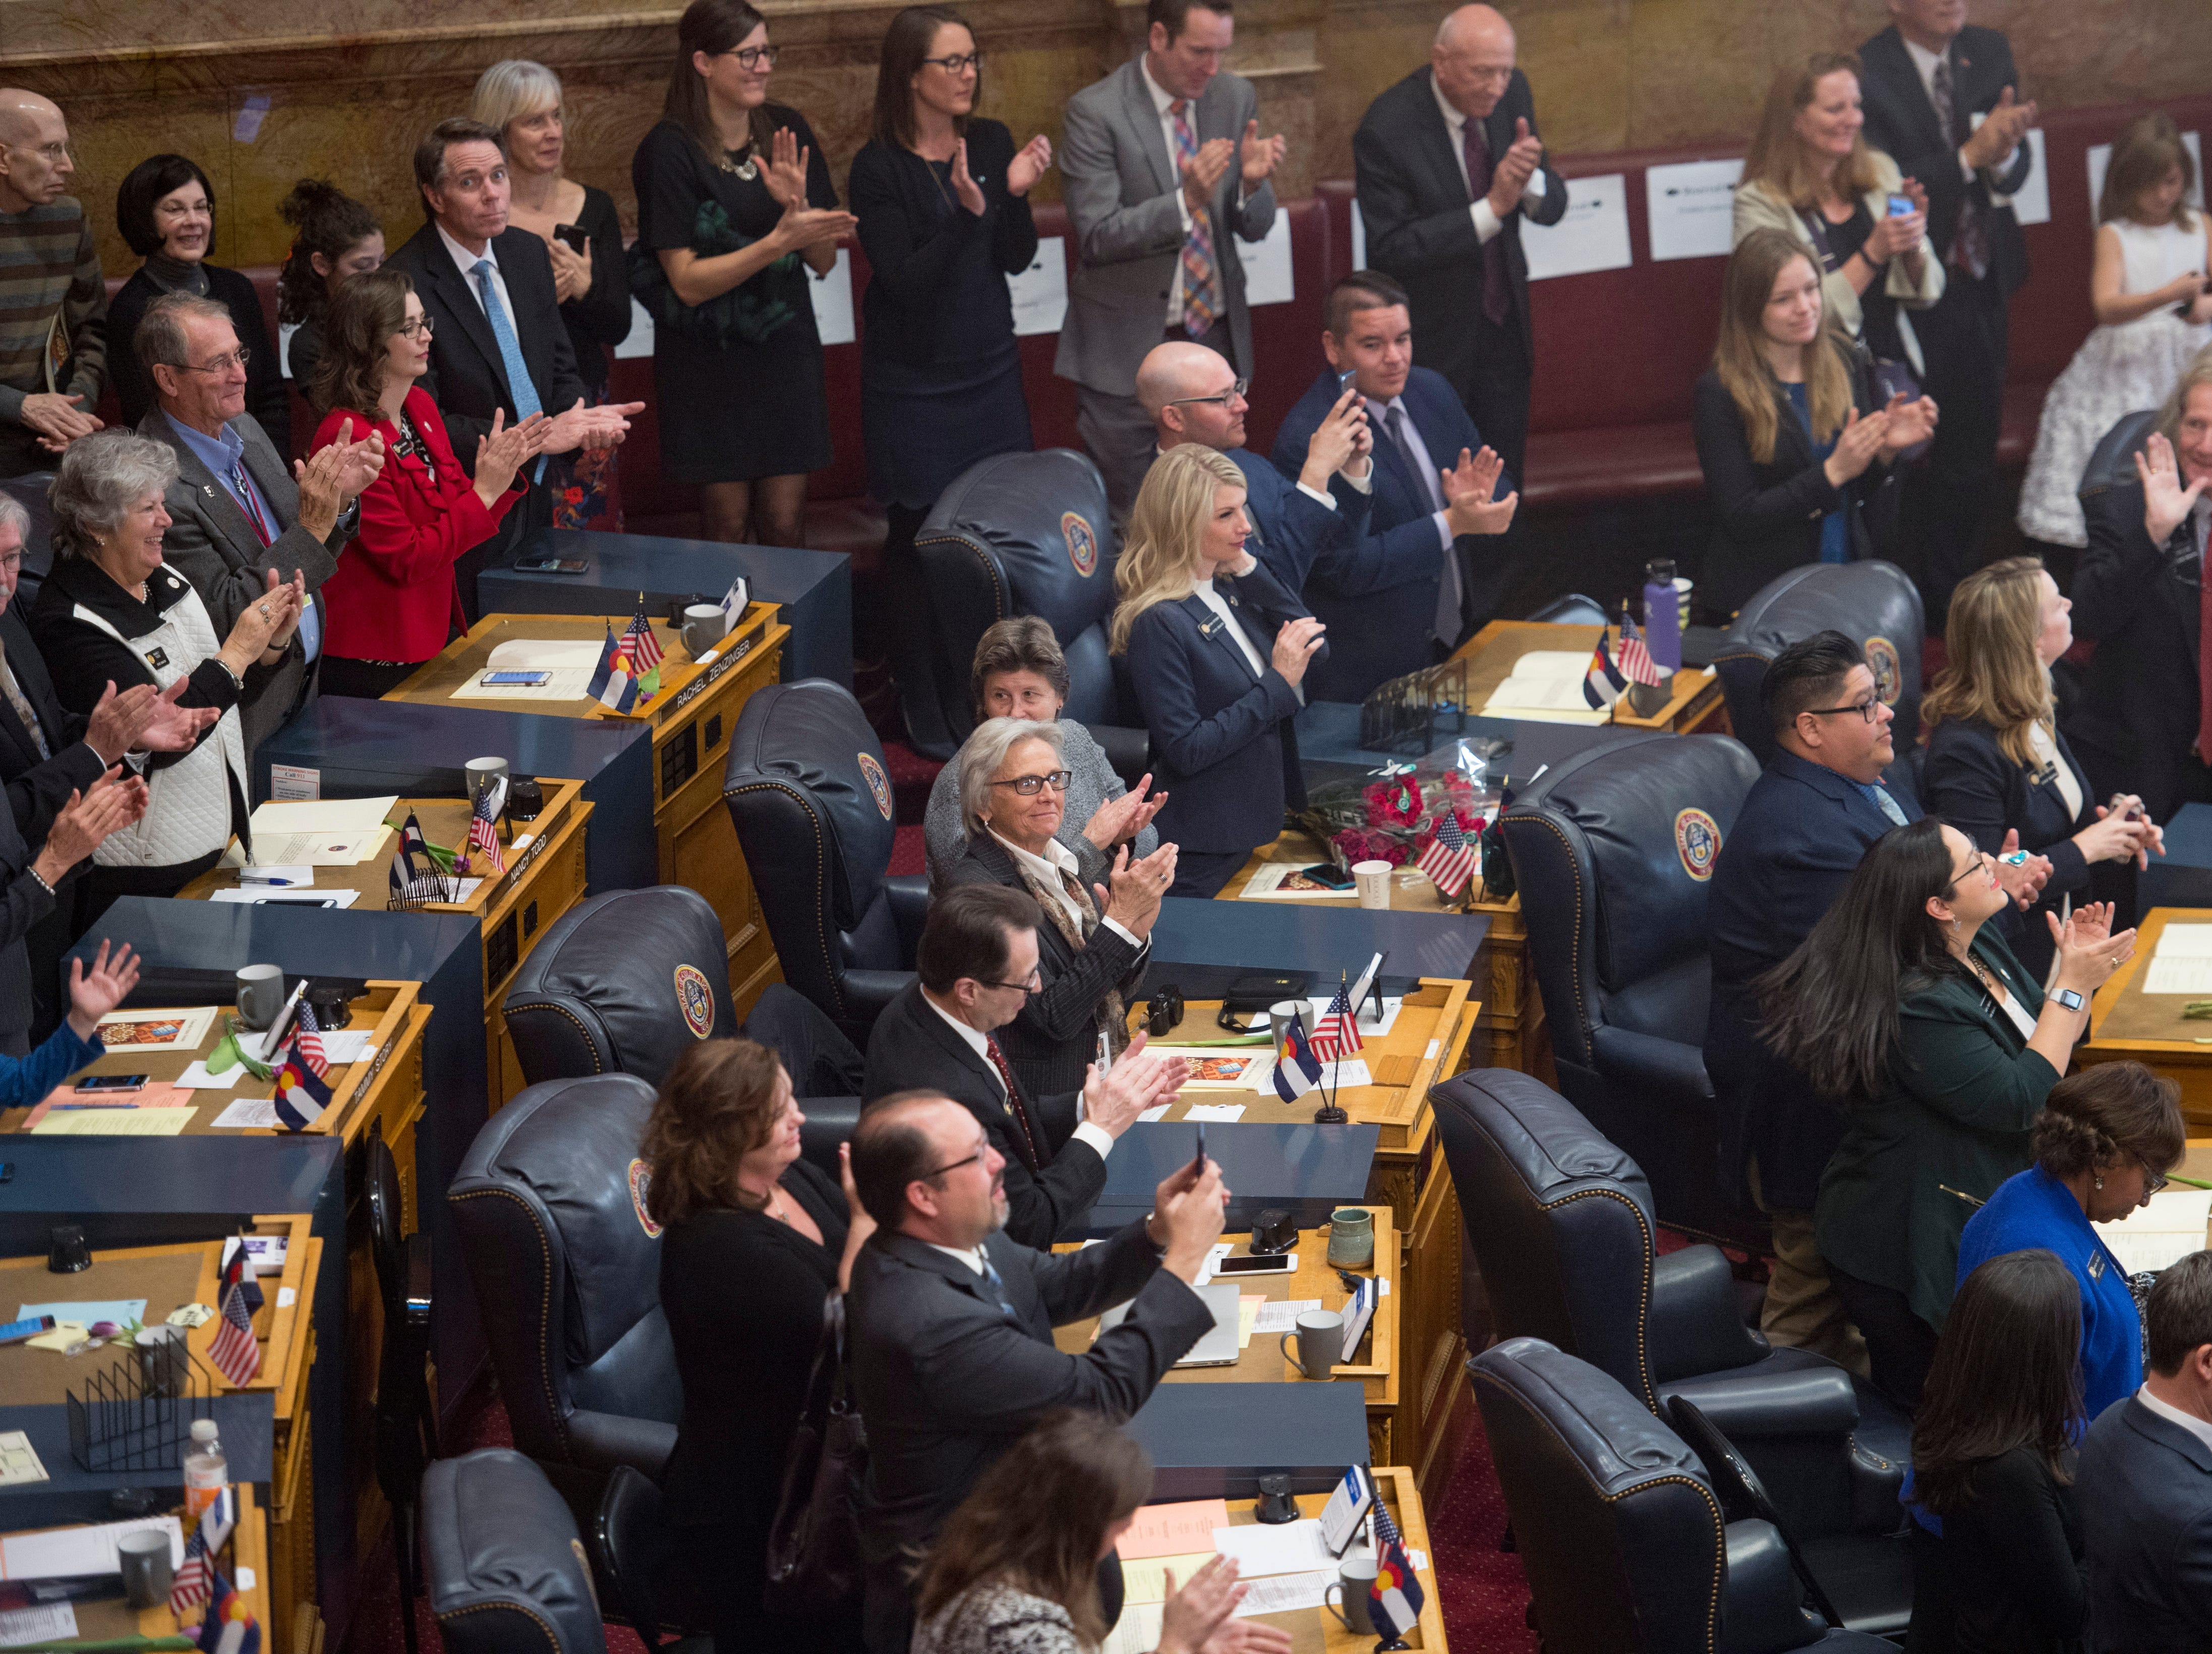 State Senators stand to applaud as the 72nd General Assembly convenes at the Colorado State Capitol on Friday, January 4, 2019.